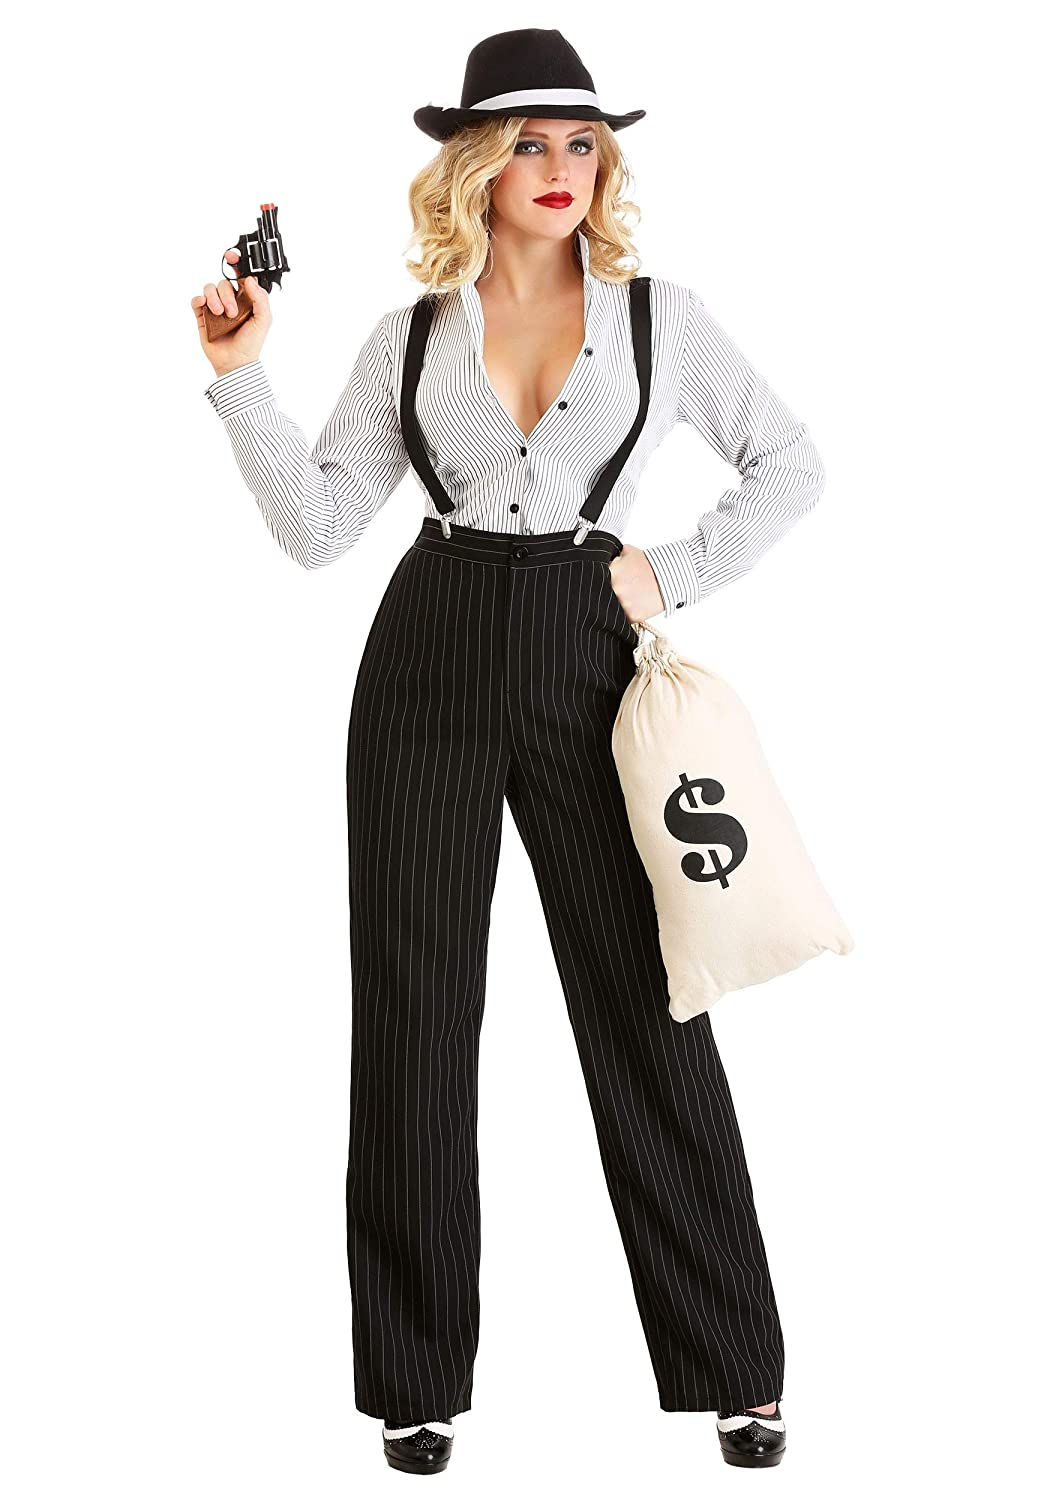 1920s Style Women's Pants, Trousers, Knickers, Tuxedo Gangster Lady Costume for Women $49.99 AT vintagedancer.com